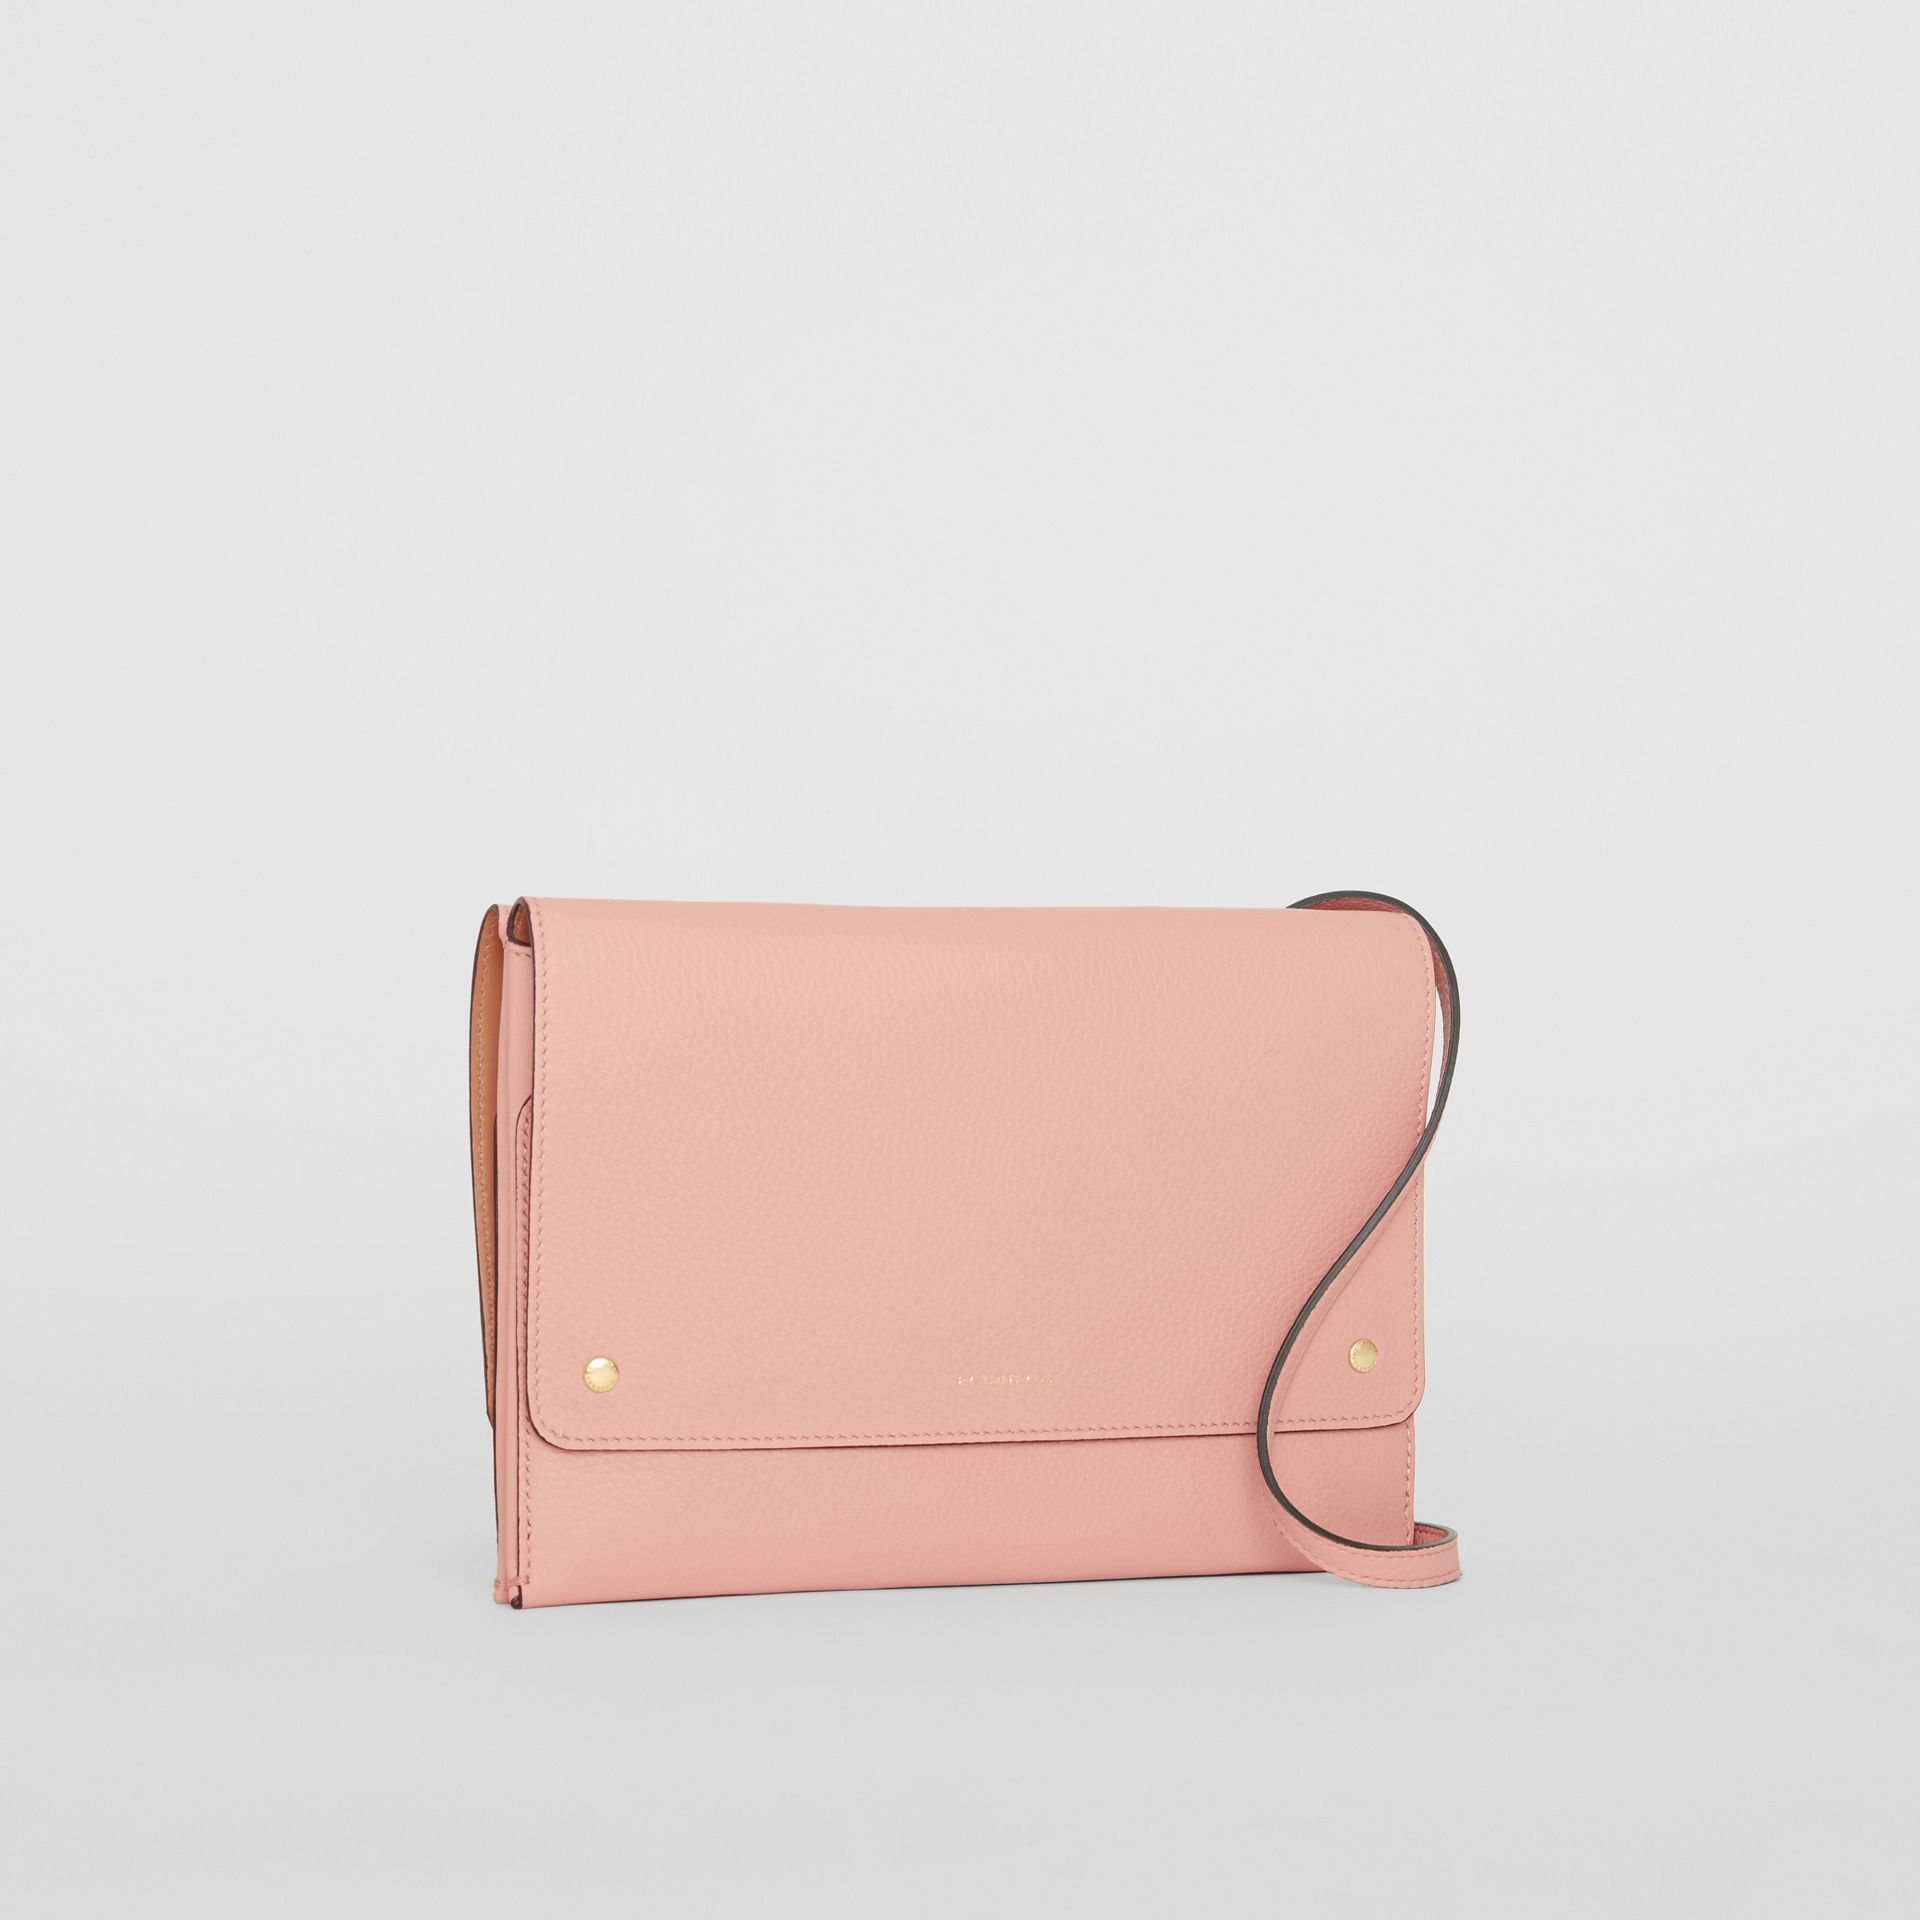 Leather Envelope Crossbody Bag in Ash Rose - Women | Burberry United States - gallery image 6